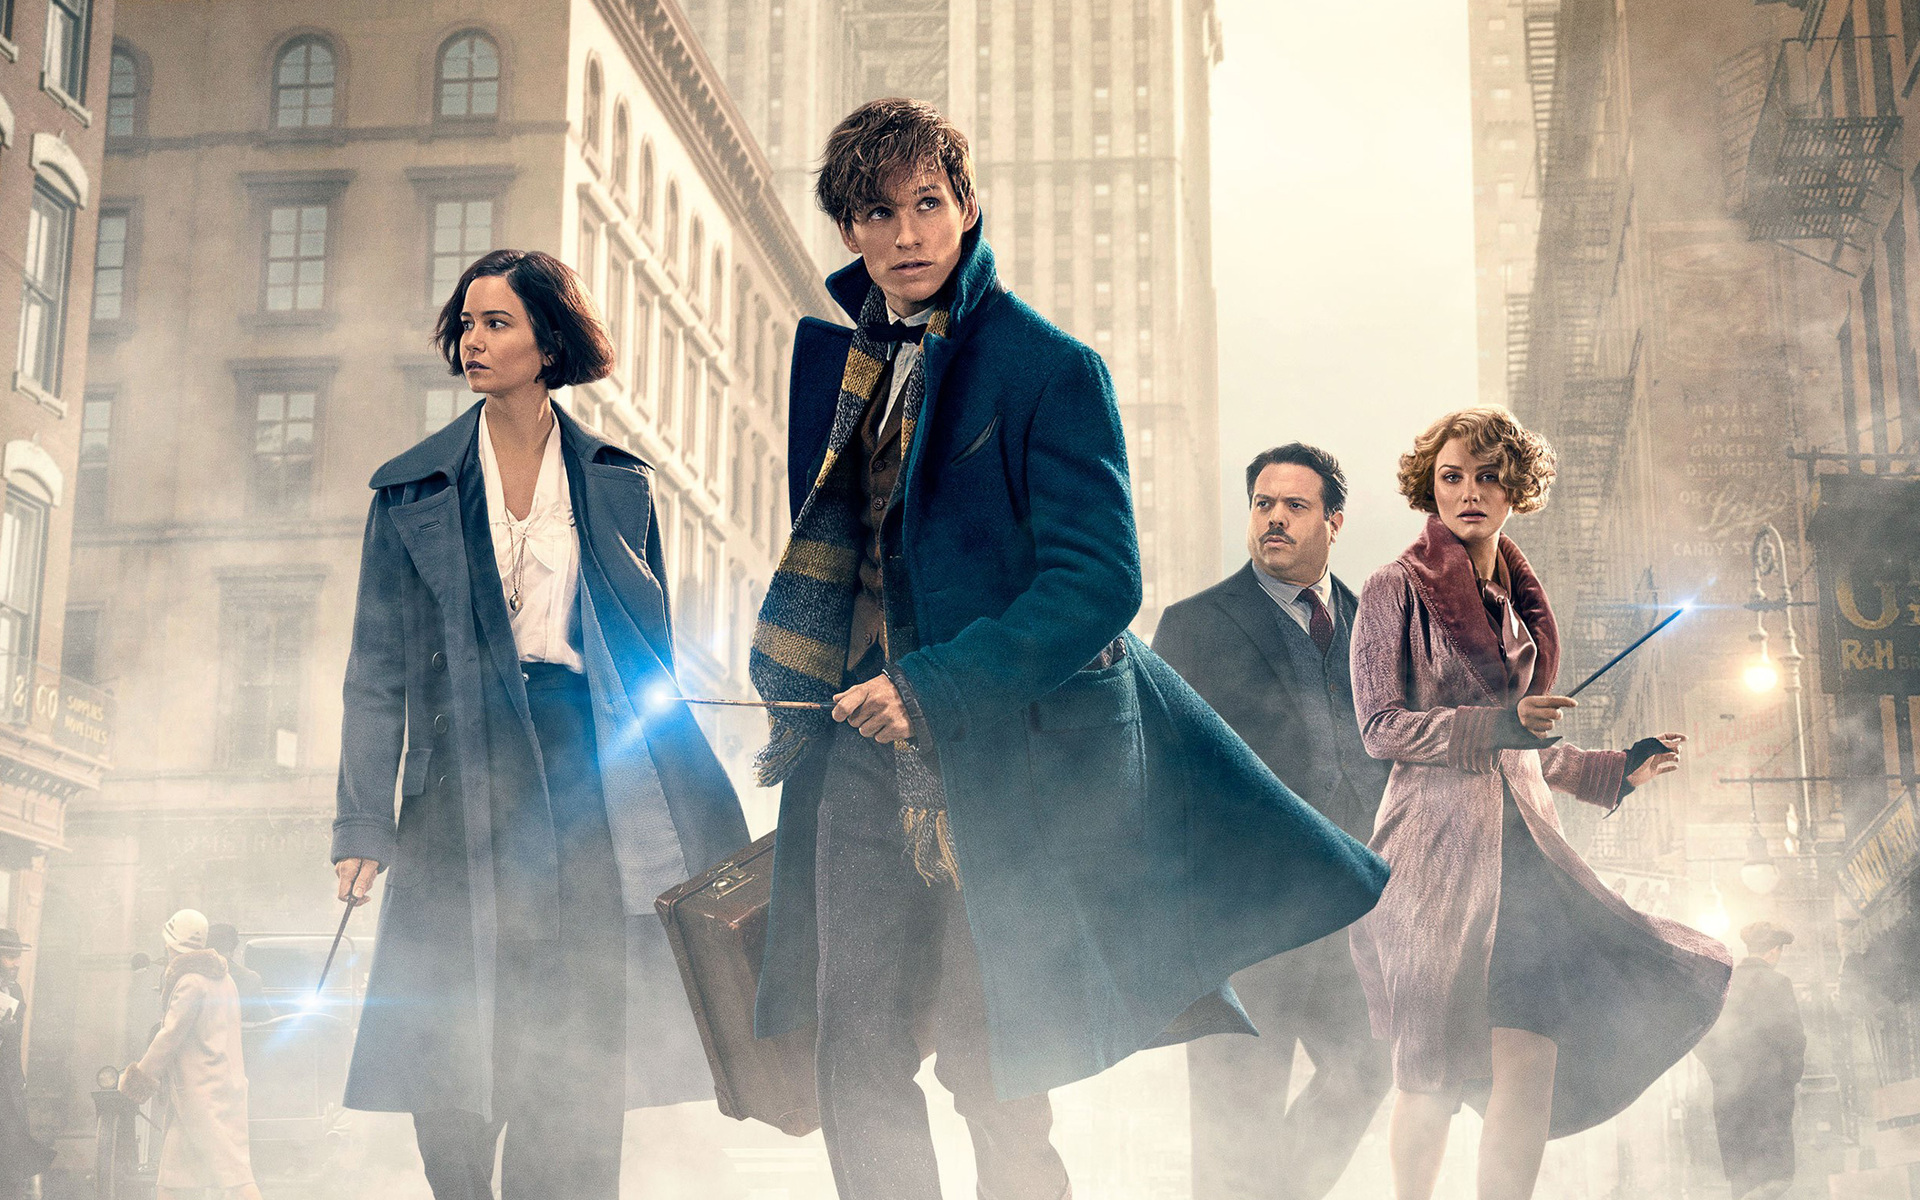 Fantastic Beasts and Where to Find Them The Original